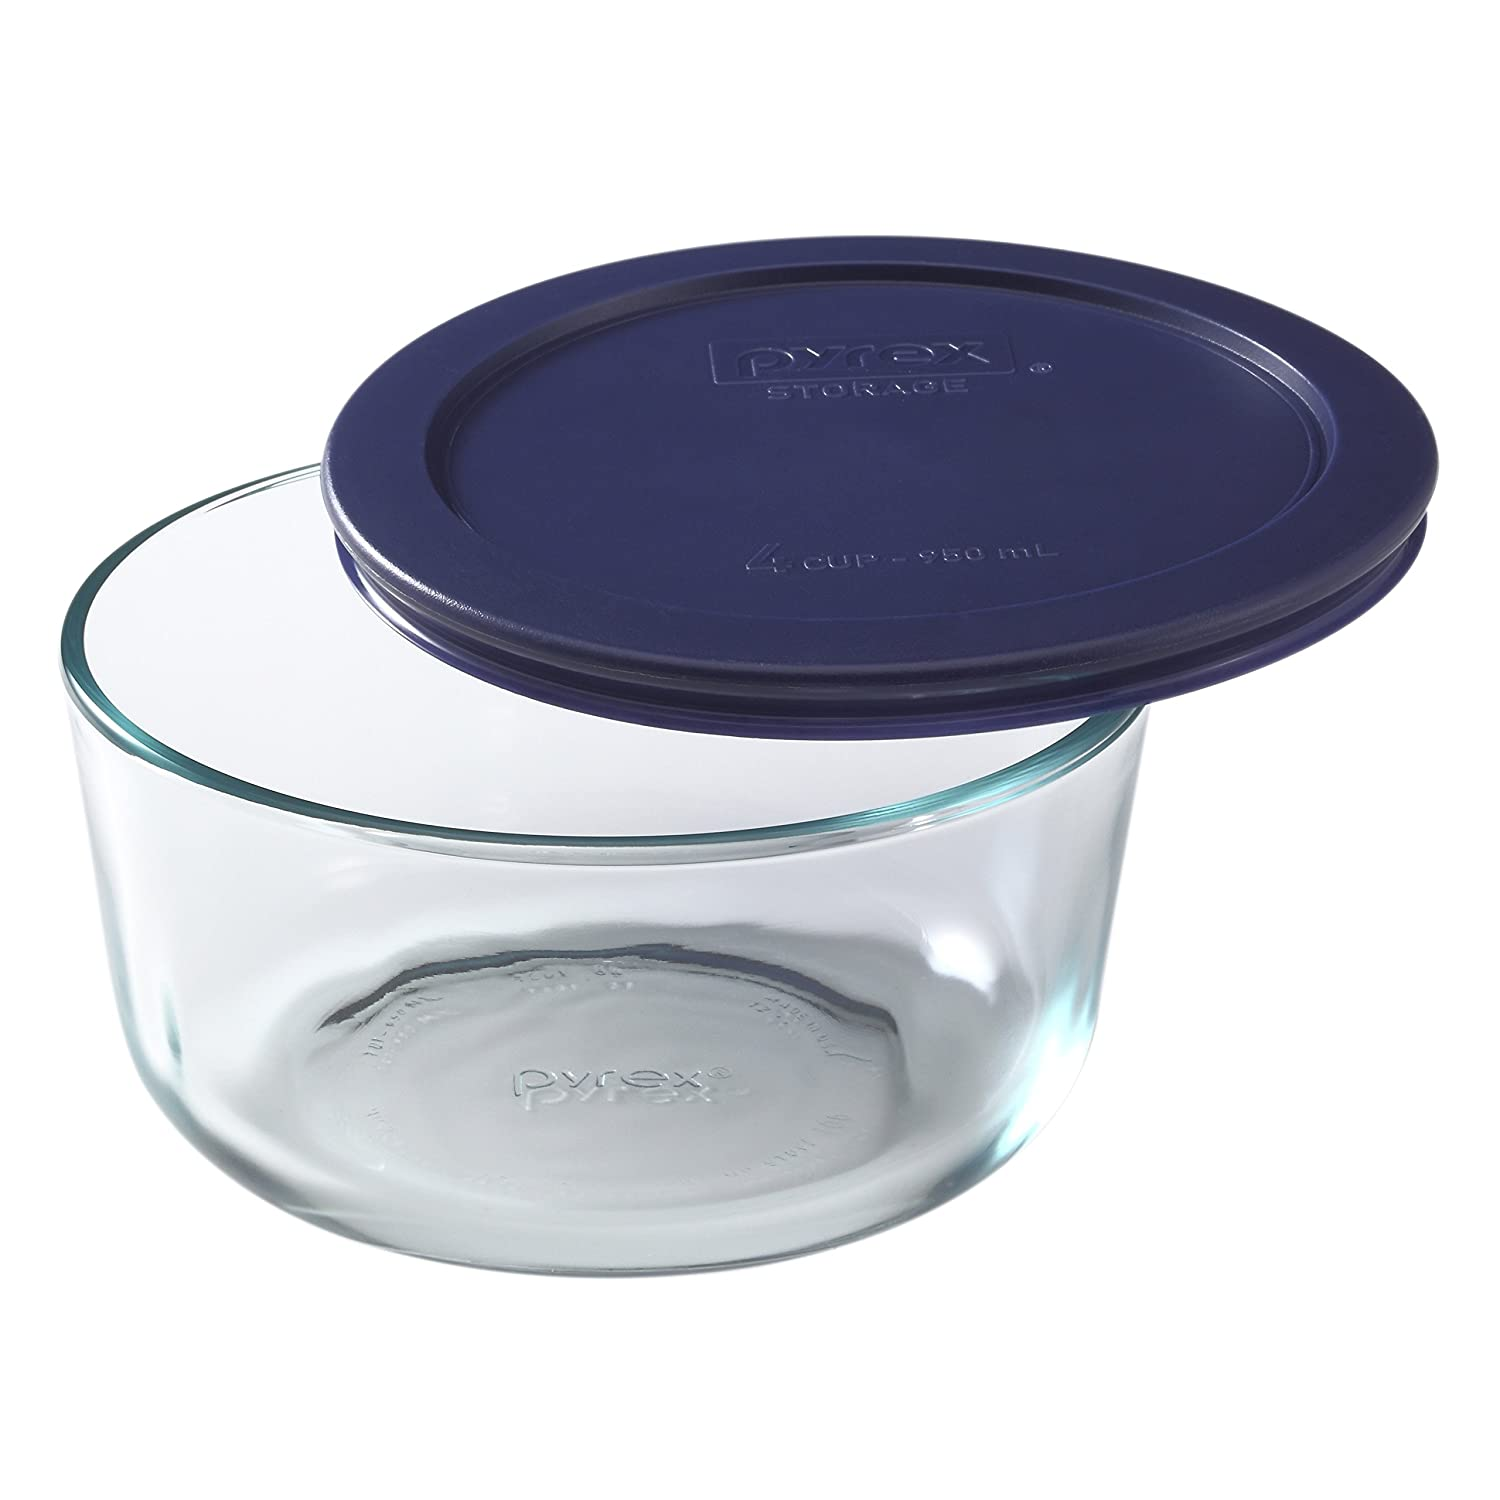 Perfect Amazon.com: Pyrex Simply Store 10 Piece Glass Food Storage Set With Blue  Lids: Bake And Serve Sets: Kitchen U0026 Dining